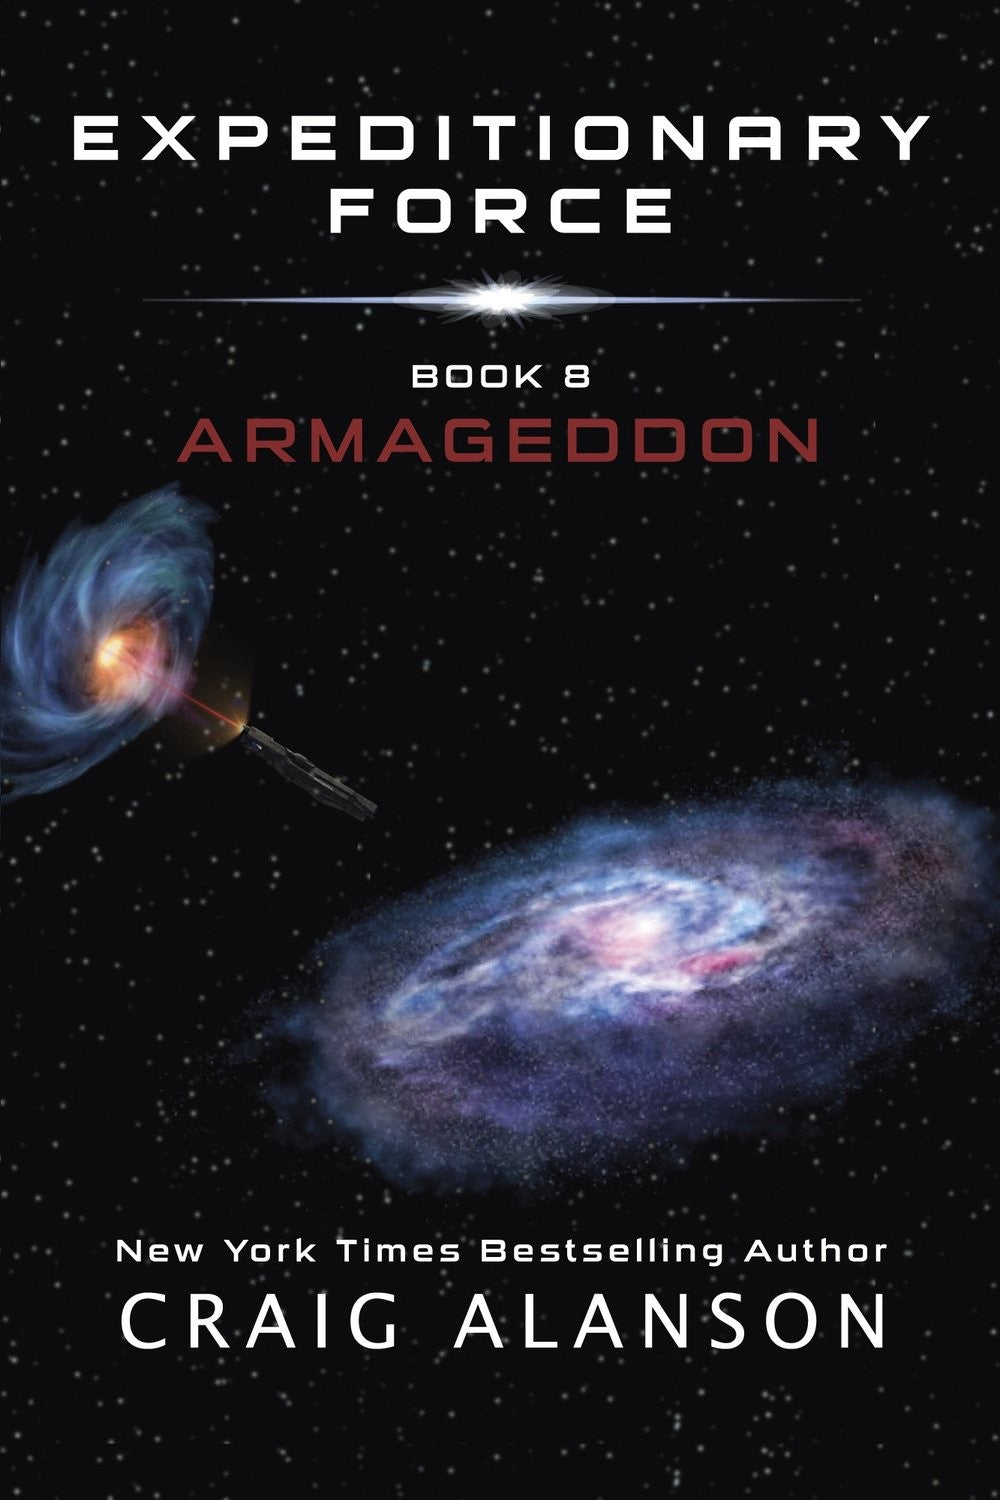 Armageddon (Expeditionary Force - Book 8)